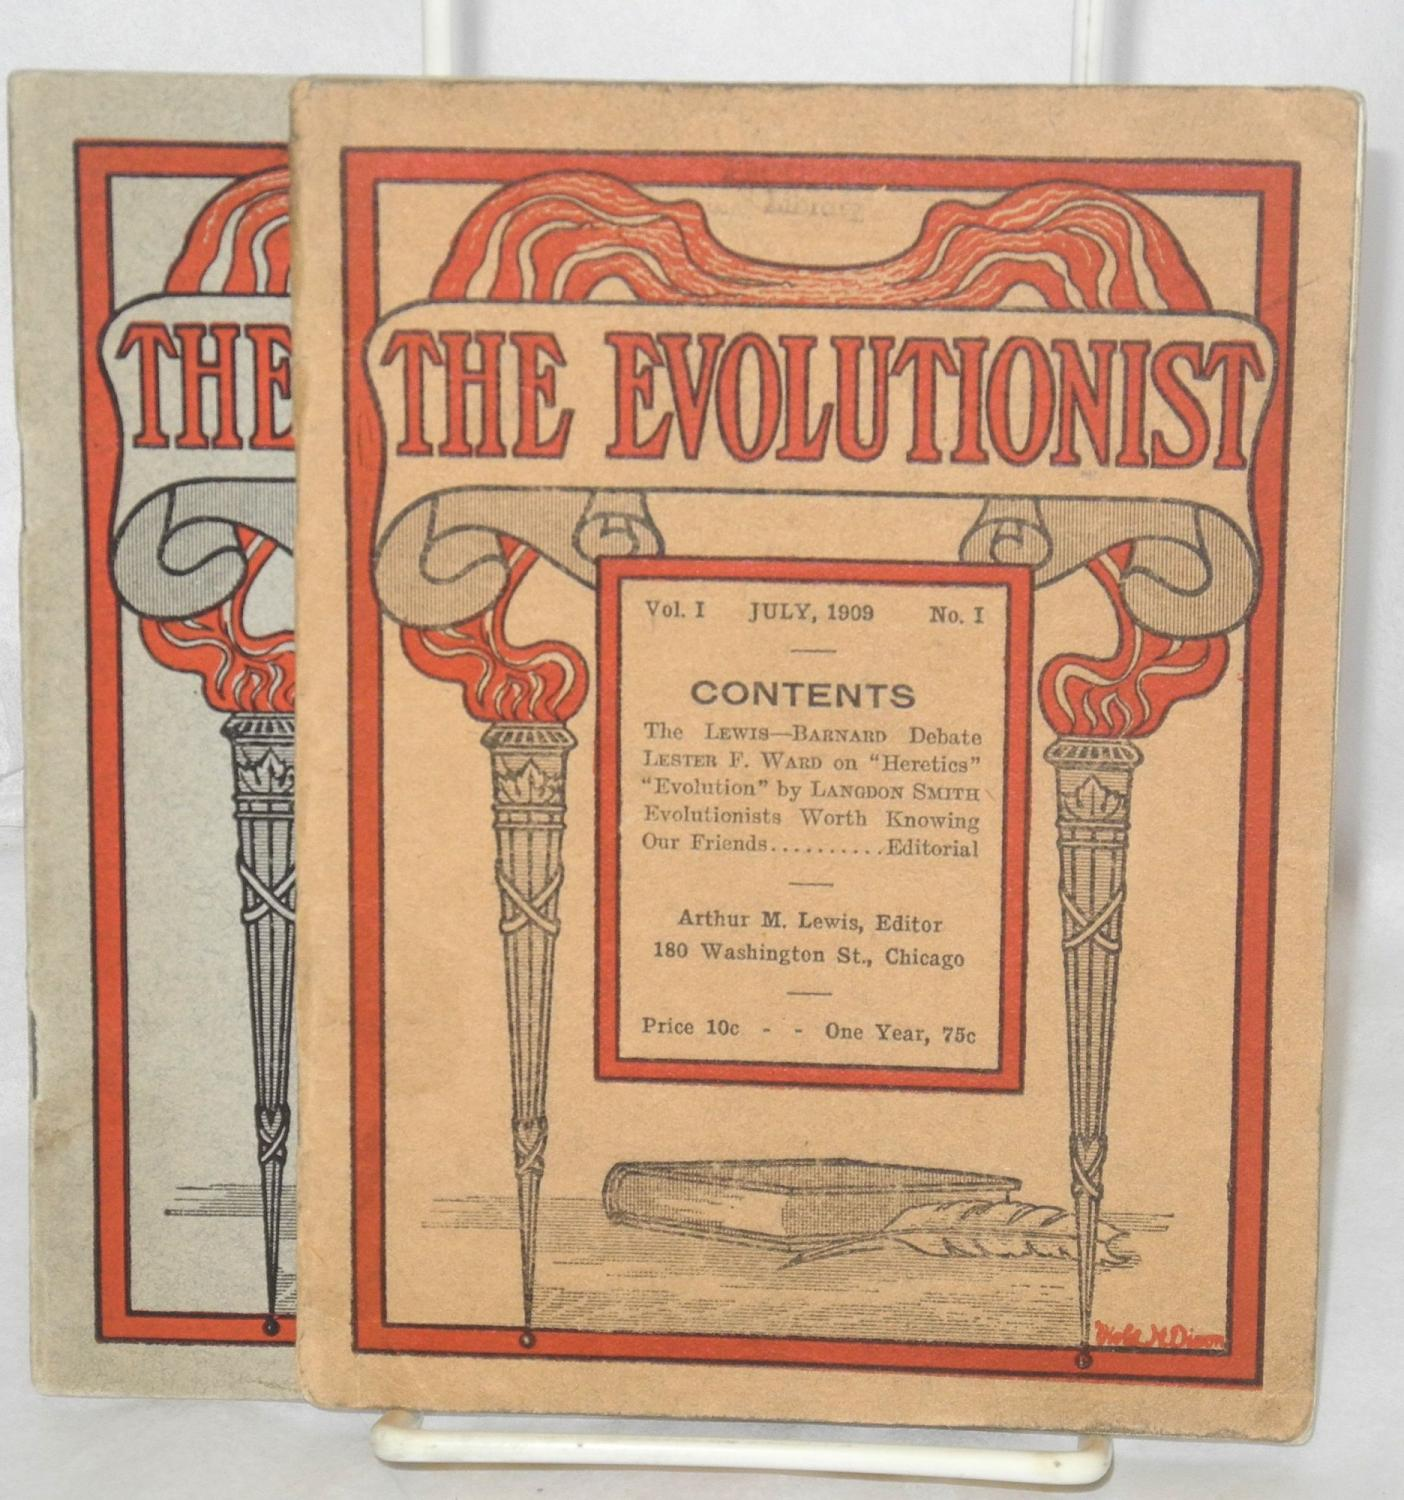 The evolutionist. Vol. I no. 1, July, 1909 and vol. 1, no ...